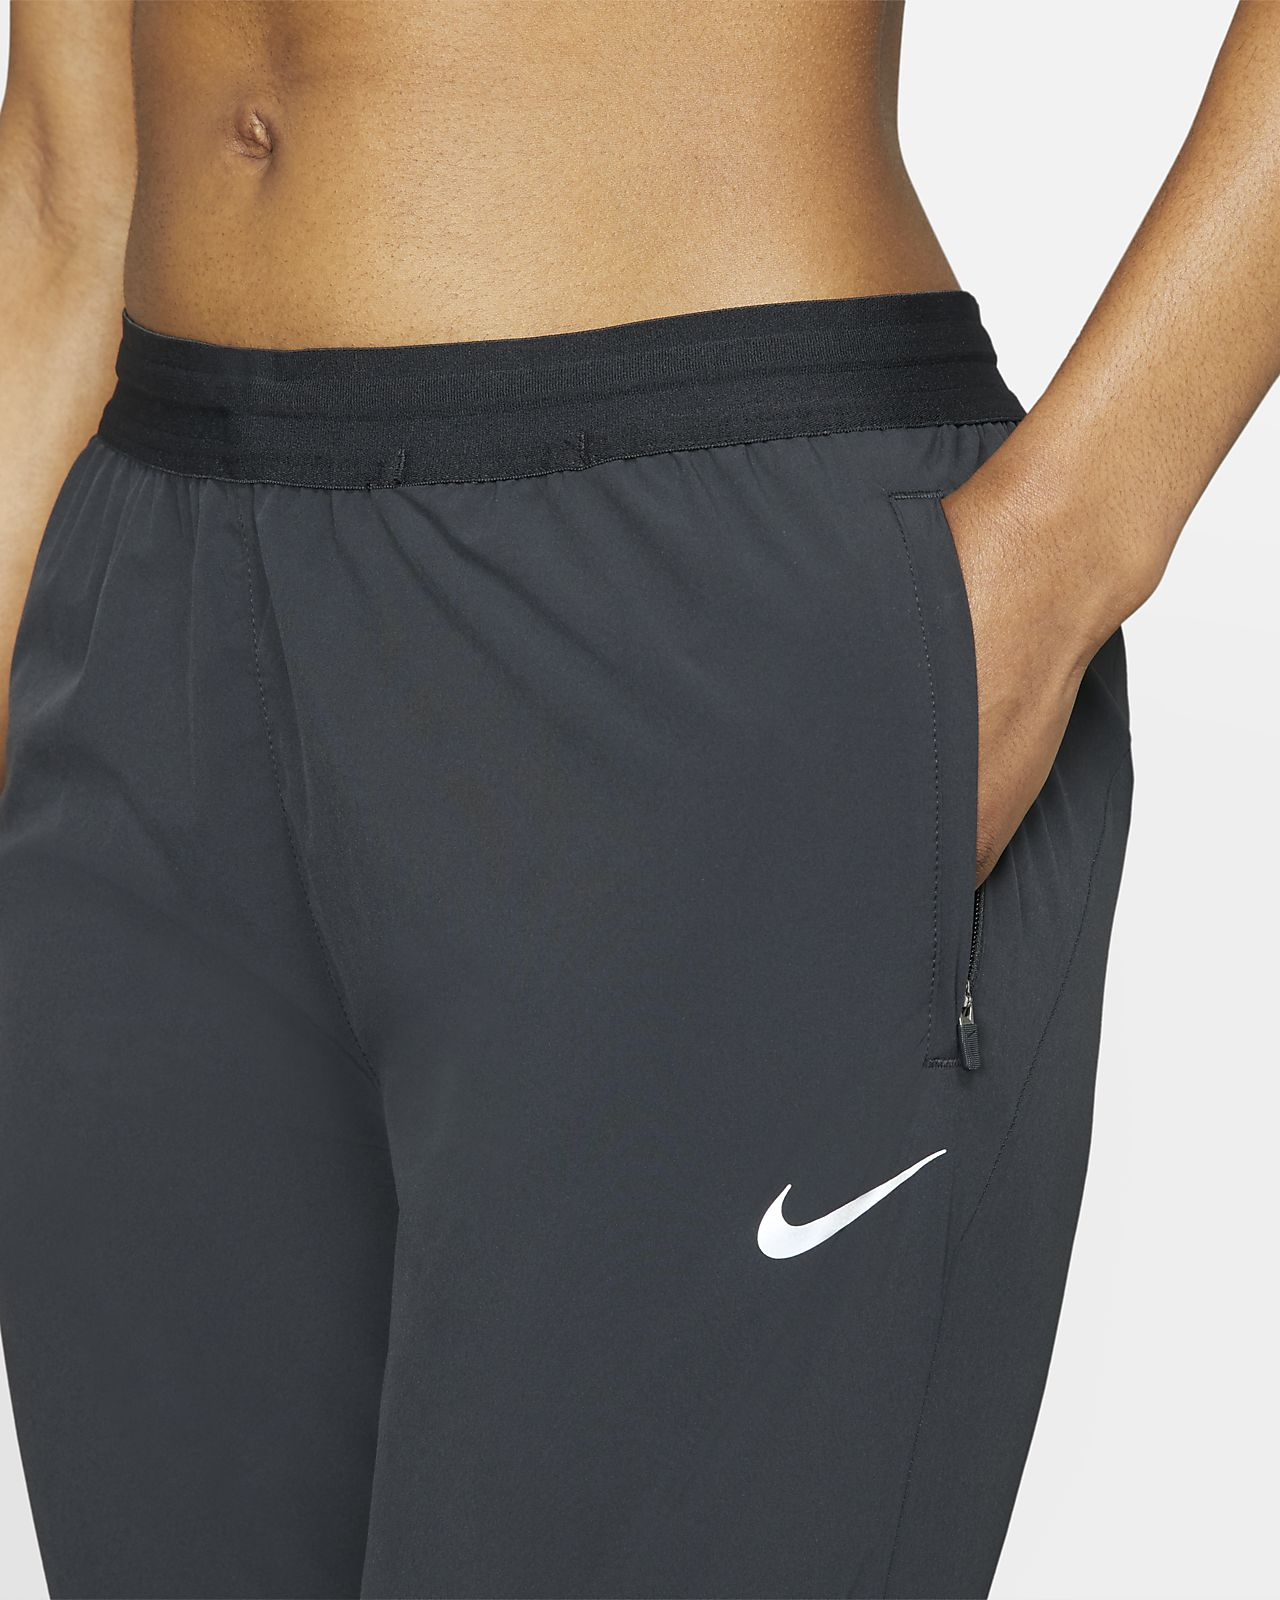 top fashion highly coveted range of attractive designs Nike Essential Women's 7/8 Running Pants